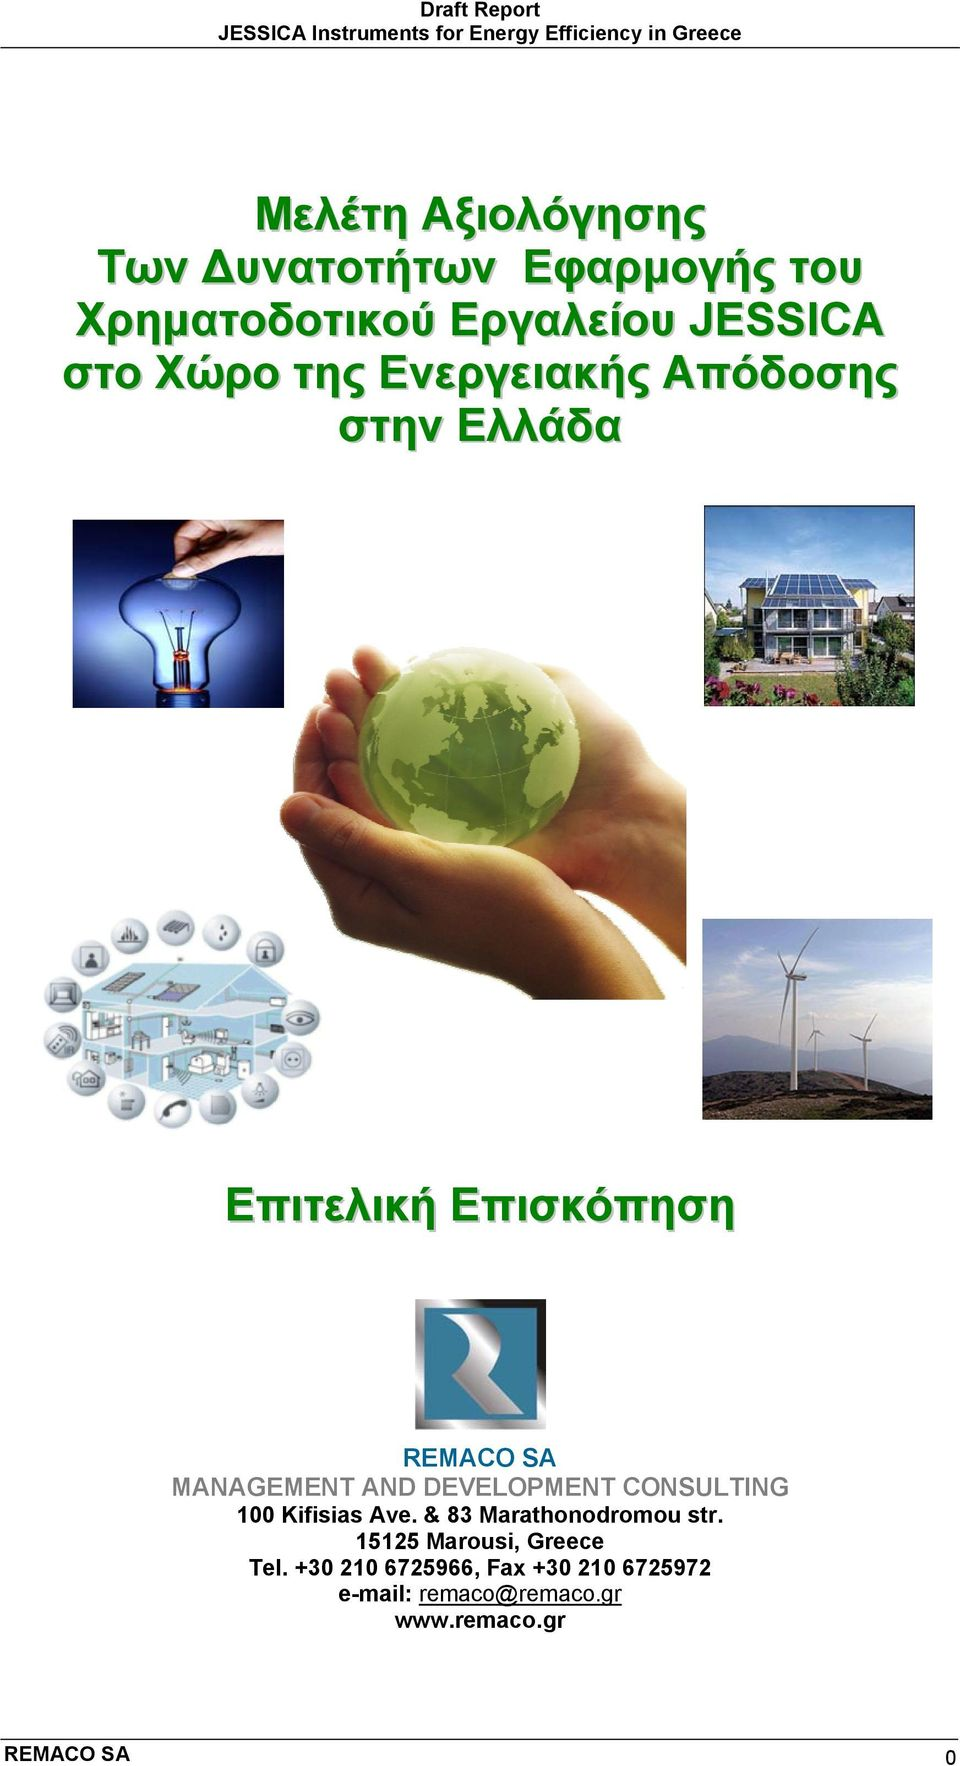 Επισκόπηση REMACO SA MANAGEMENT AND DEVELOPMENT CONSULTING 100 Kifisias Ave. & 83 Marathonodromou str.